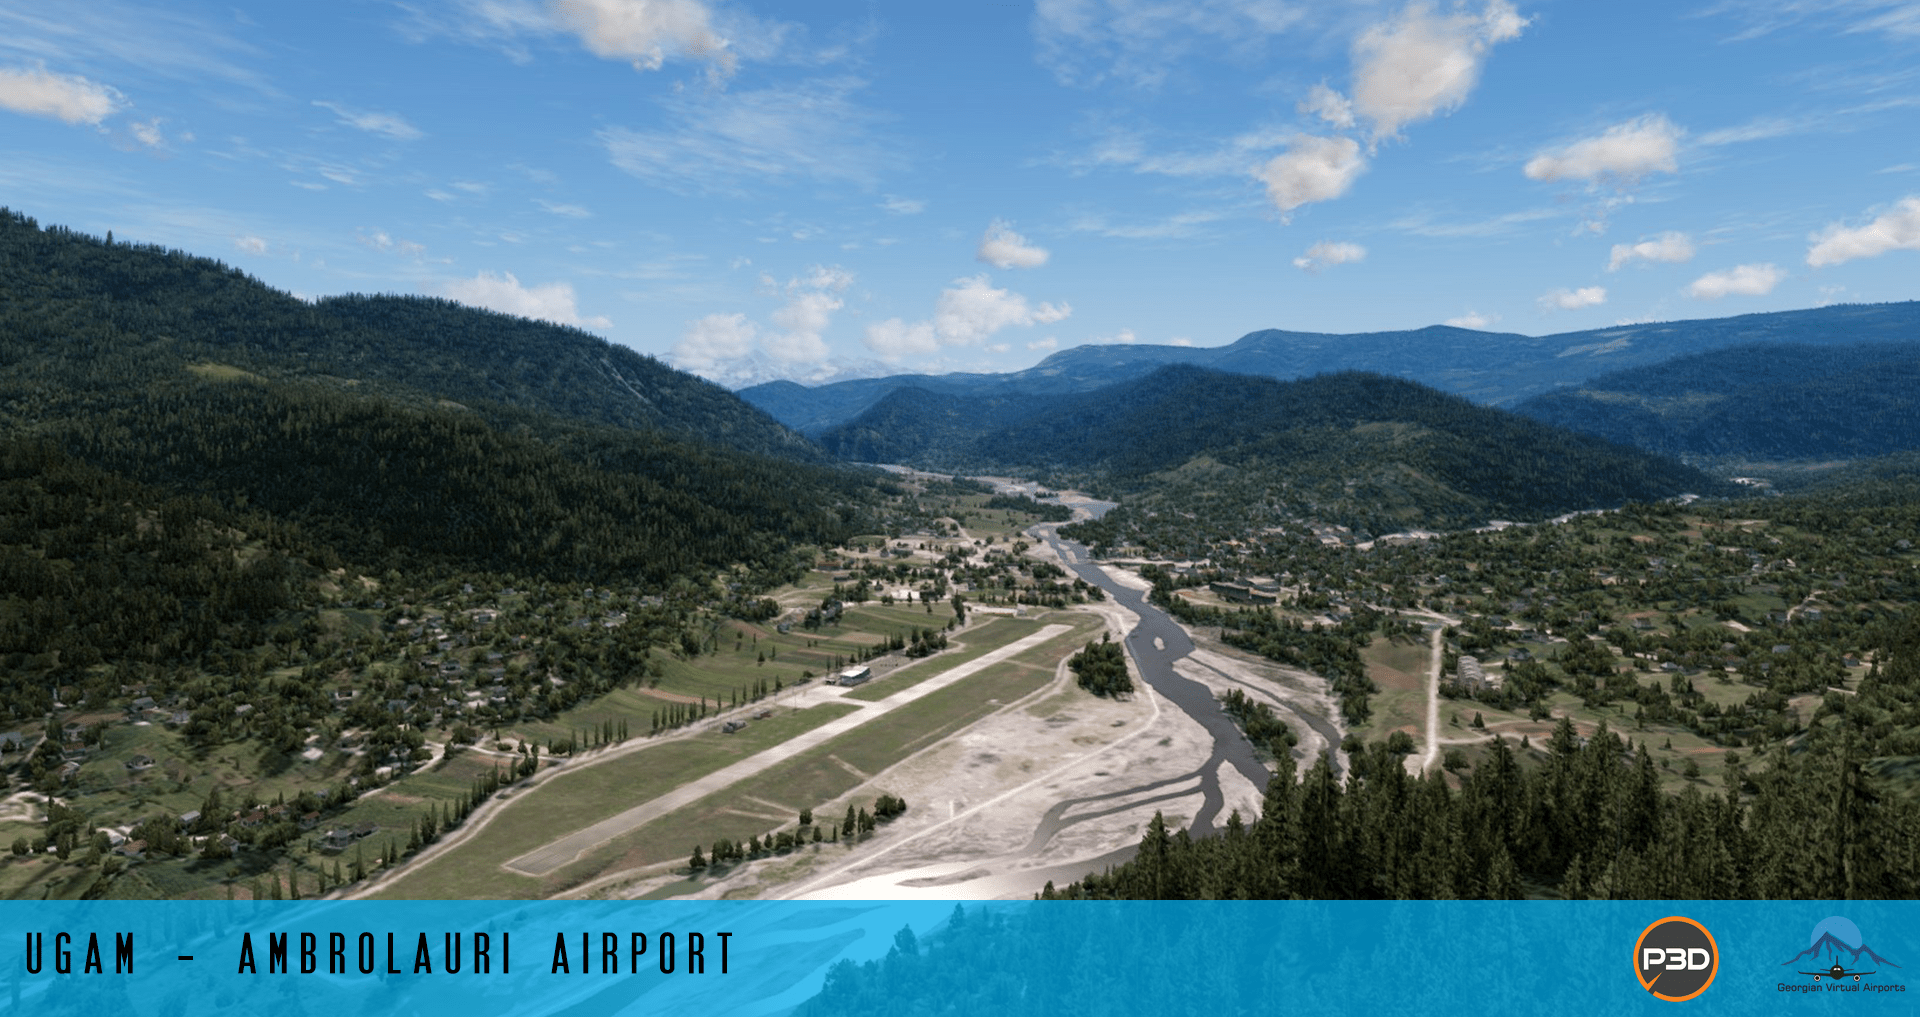 Azj1wLR Georgian Virtual Airports Release Freeware UGAM-Ambrolauri